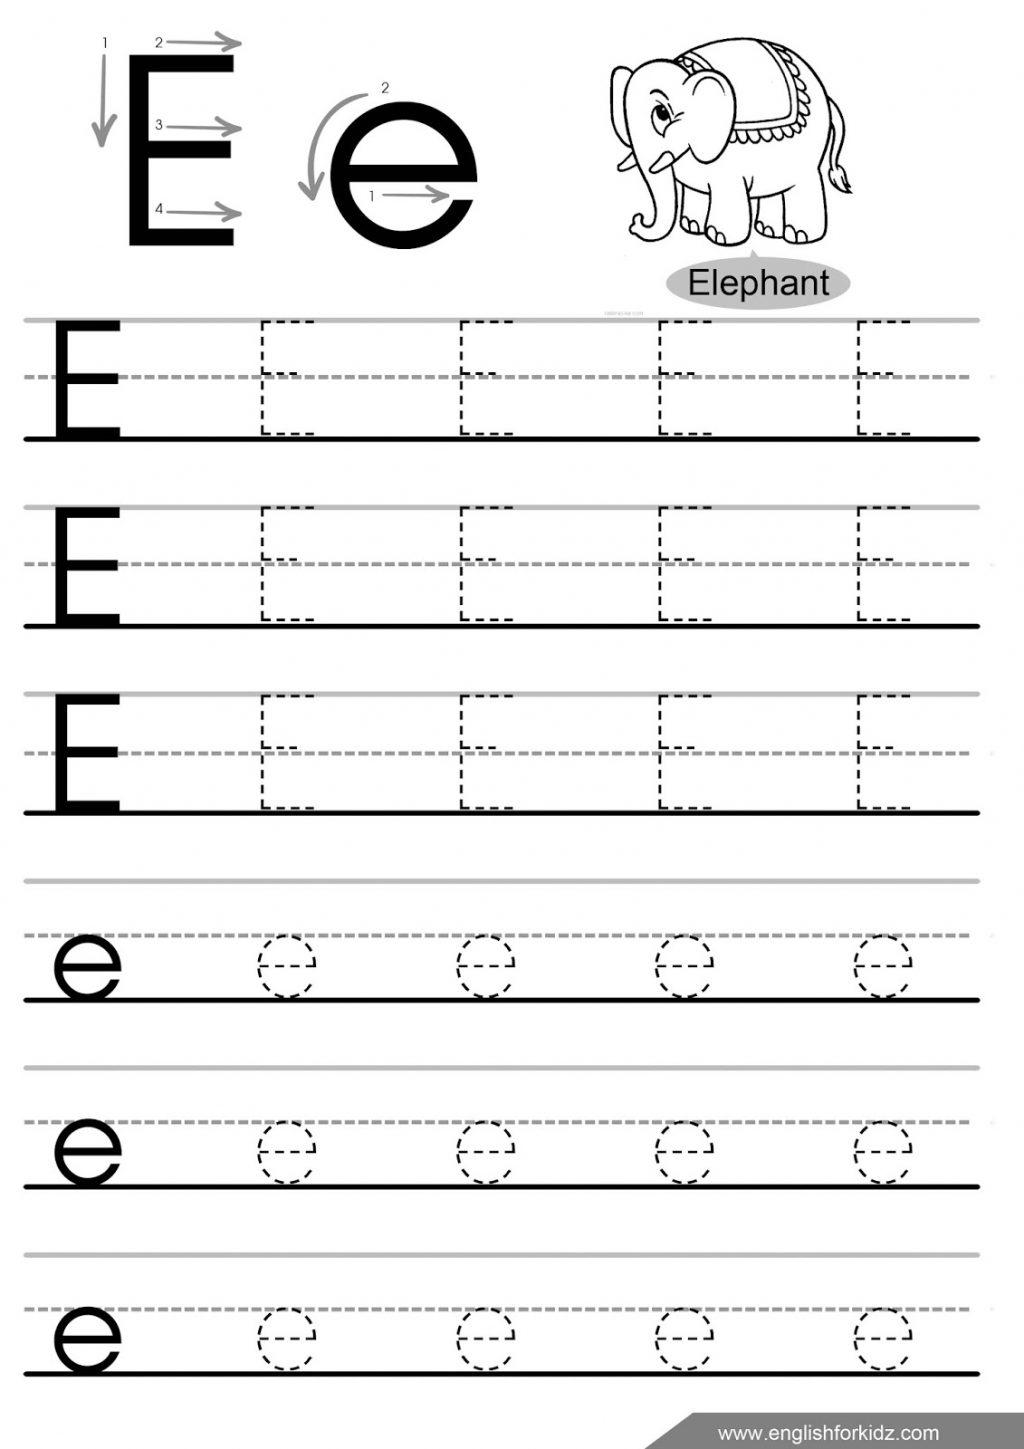 32 Fun Letter E Worksheets | Kittybabylove | Printable Letter E Worksheets For Preschool